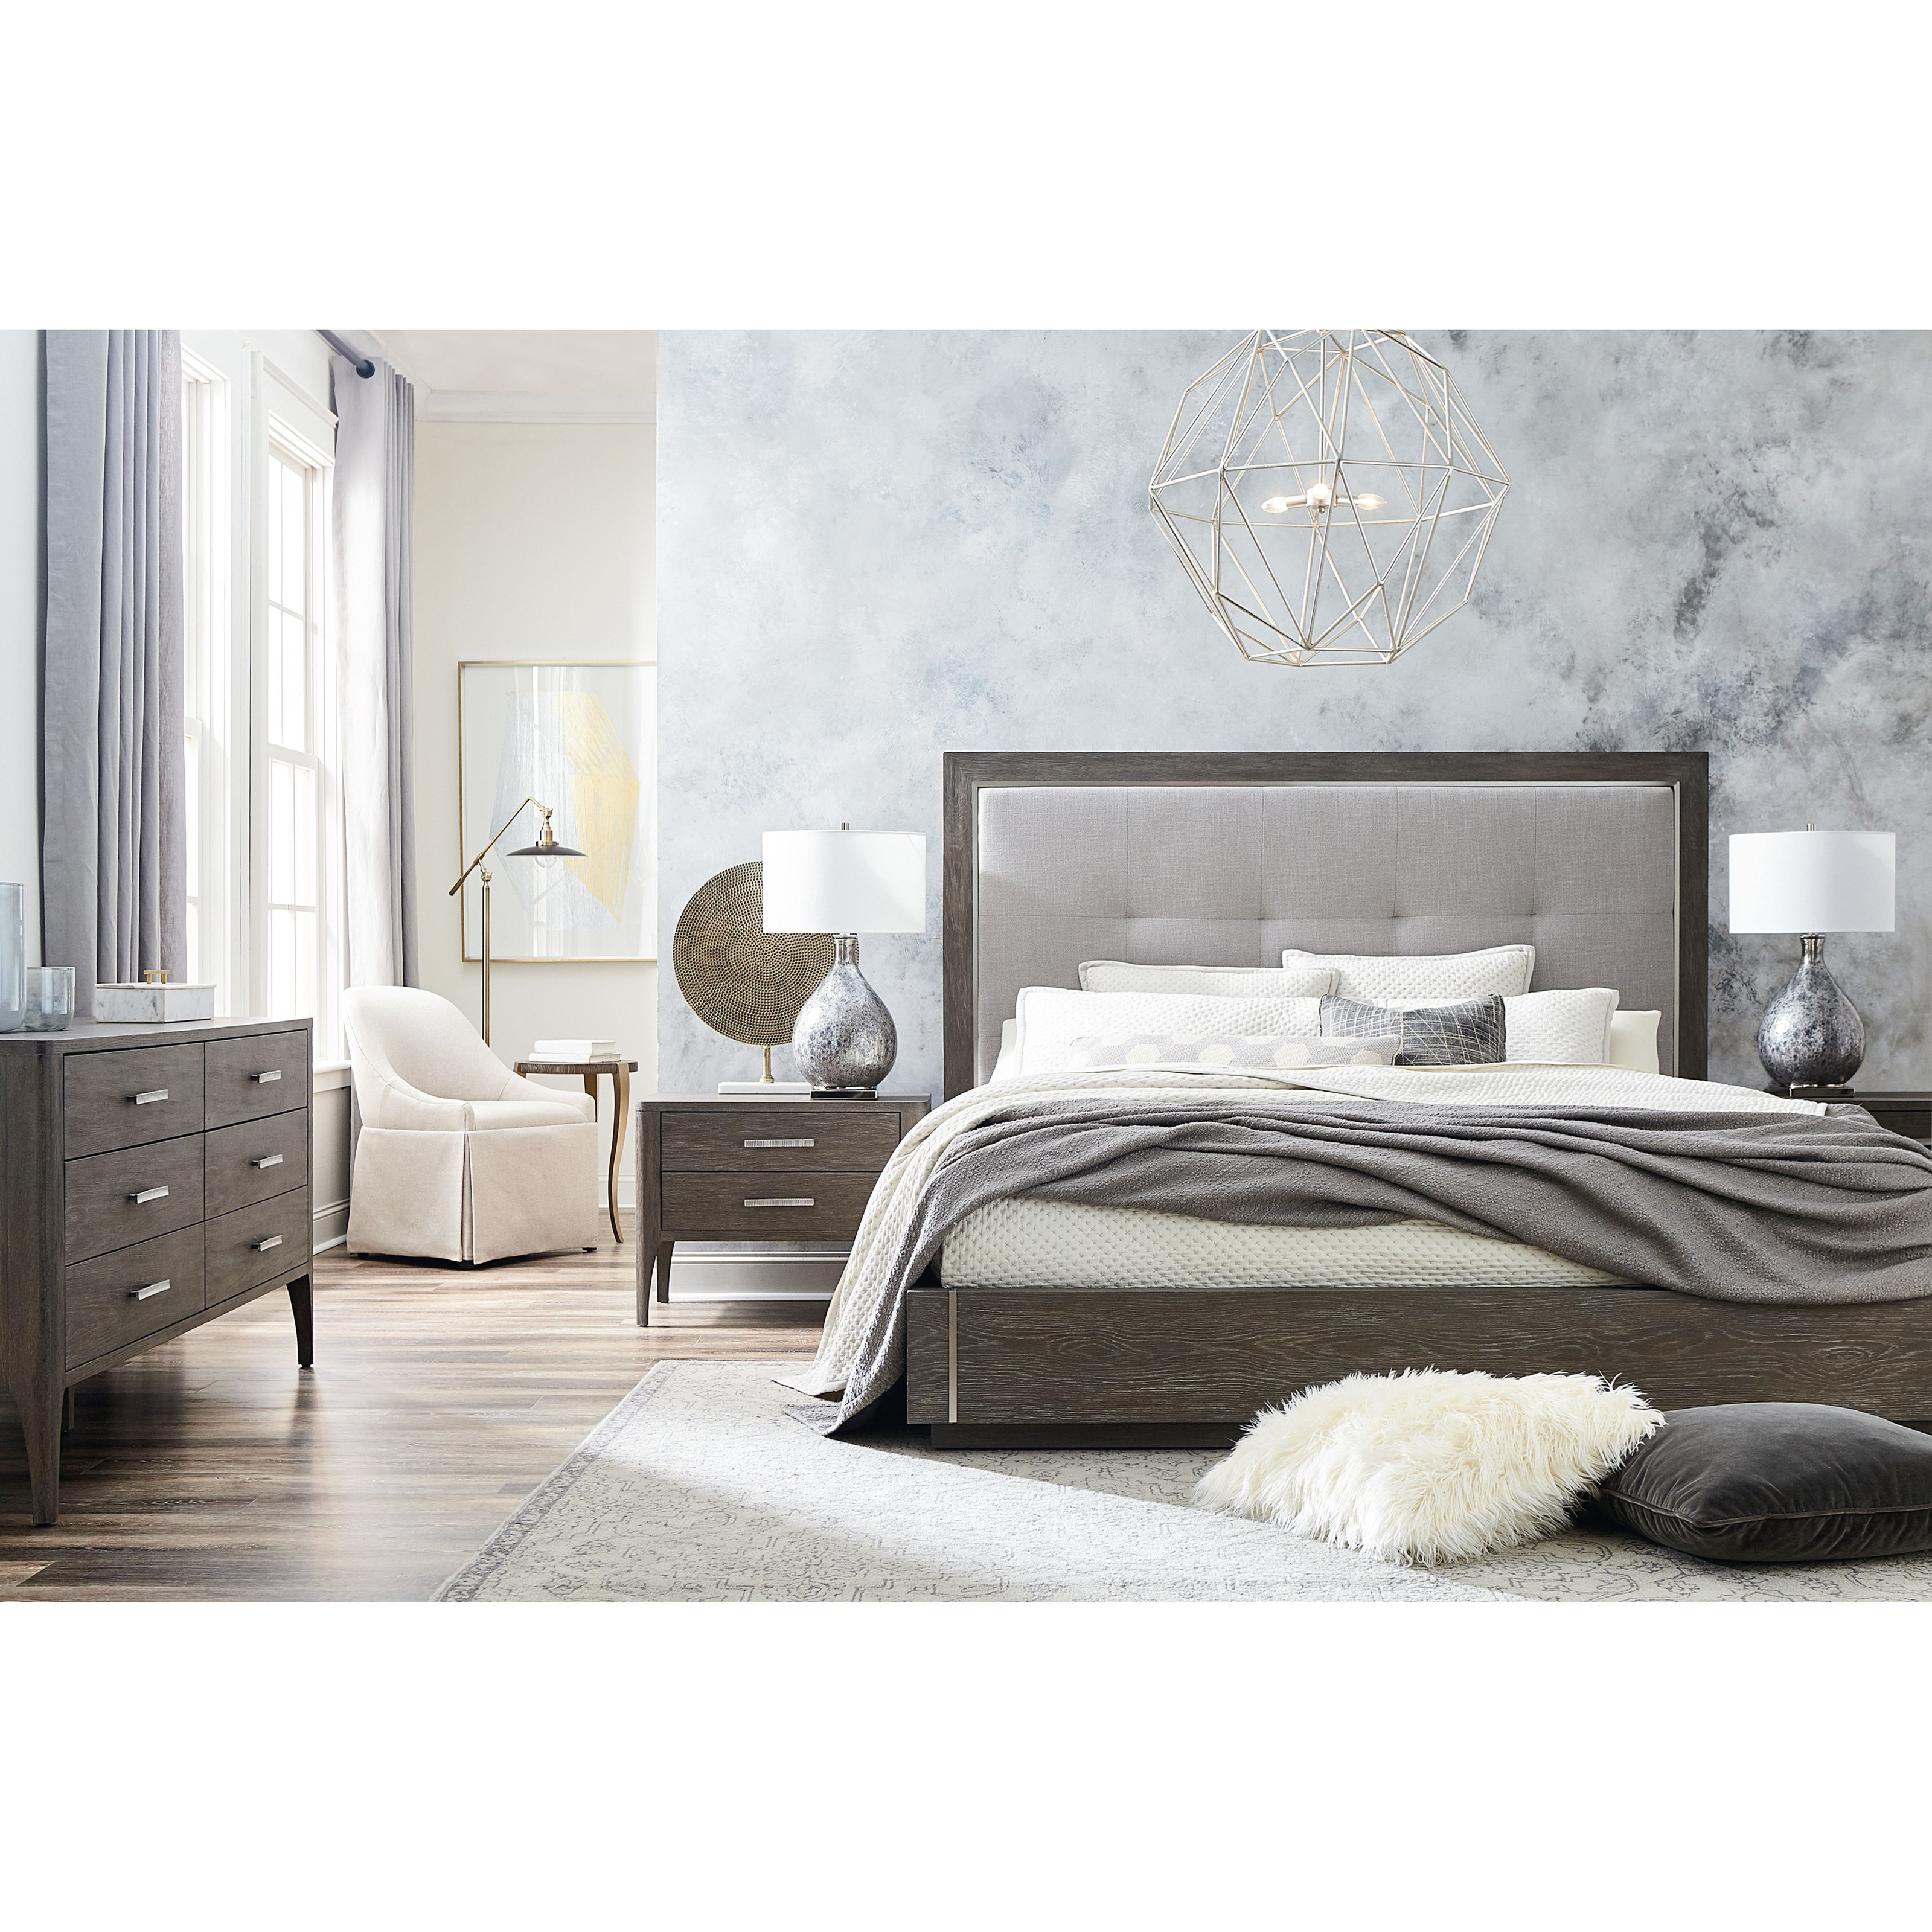 Modern - Astor and Rivoli California King Bedroom Group by Bassett at Williams & Kay